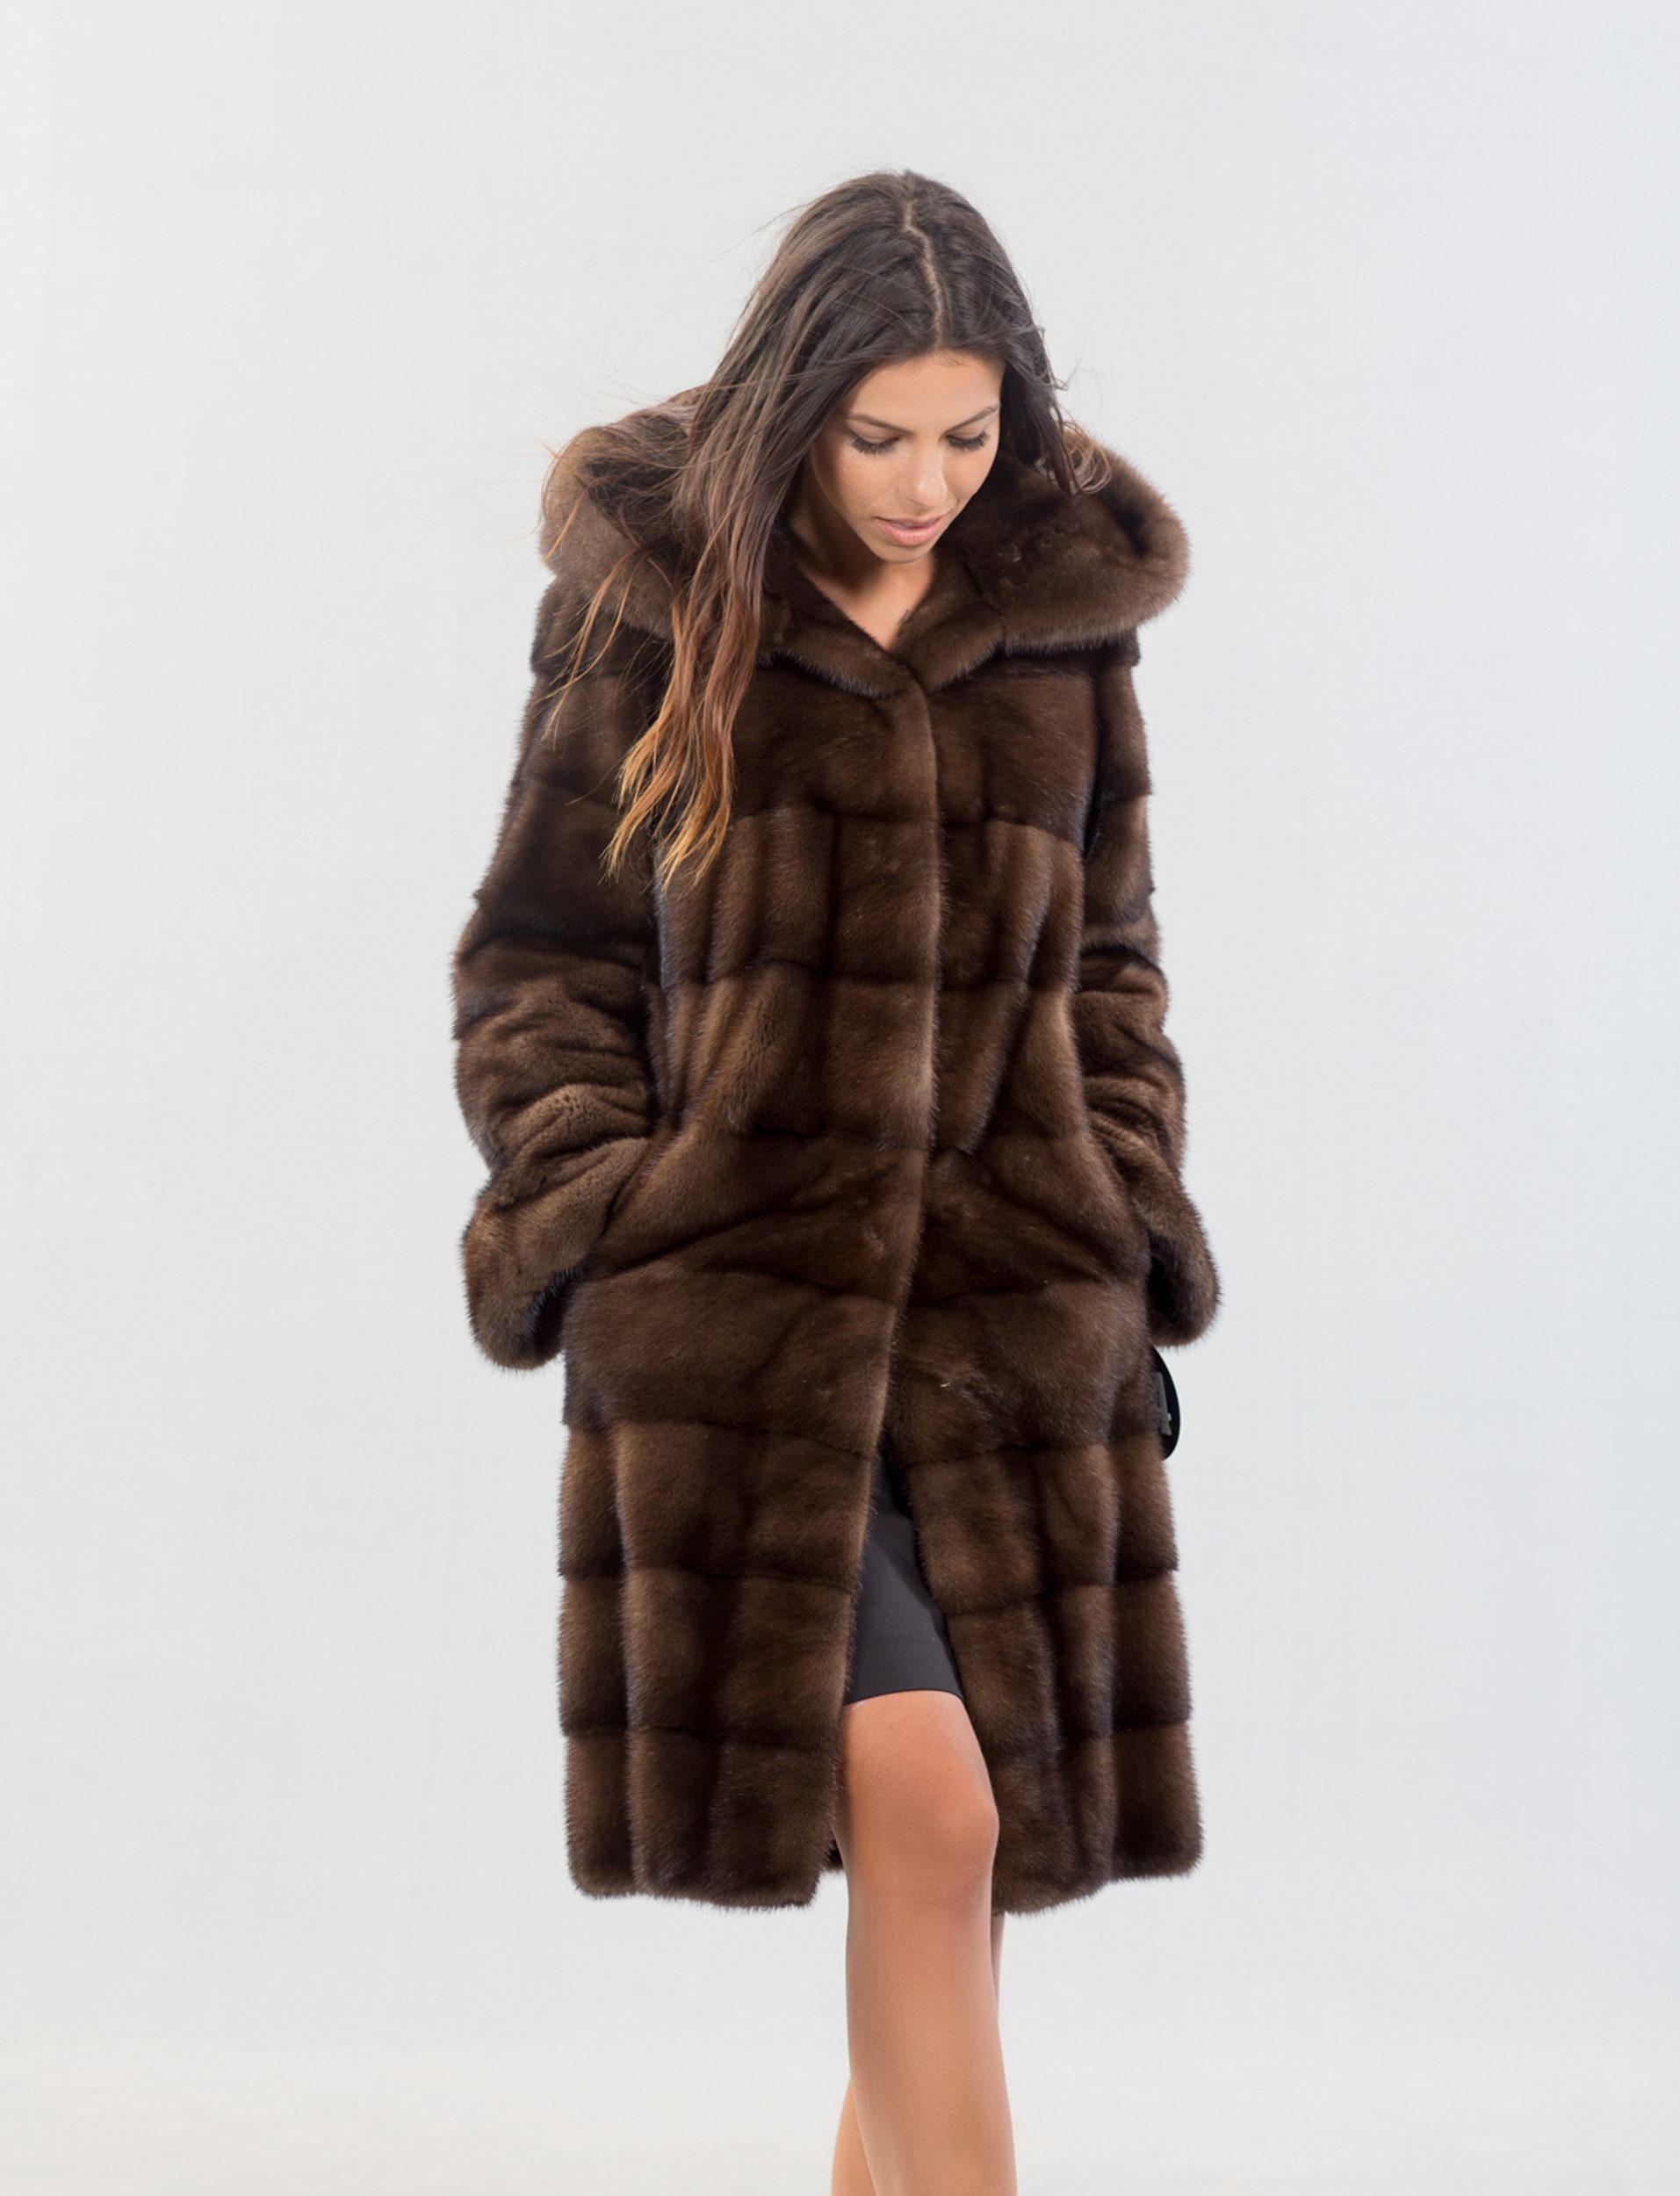 Brown Mink Fur Coat With Hood - 100% Real Fur Coats - Haute Acorn